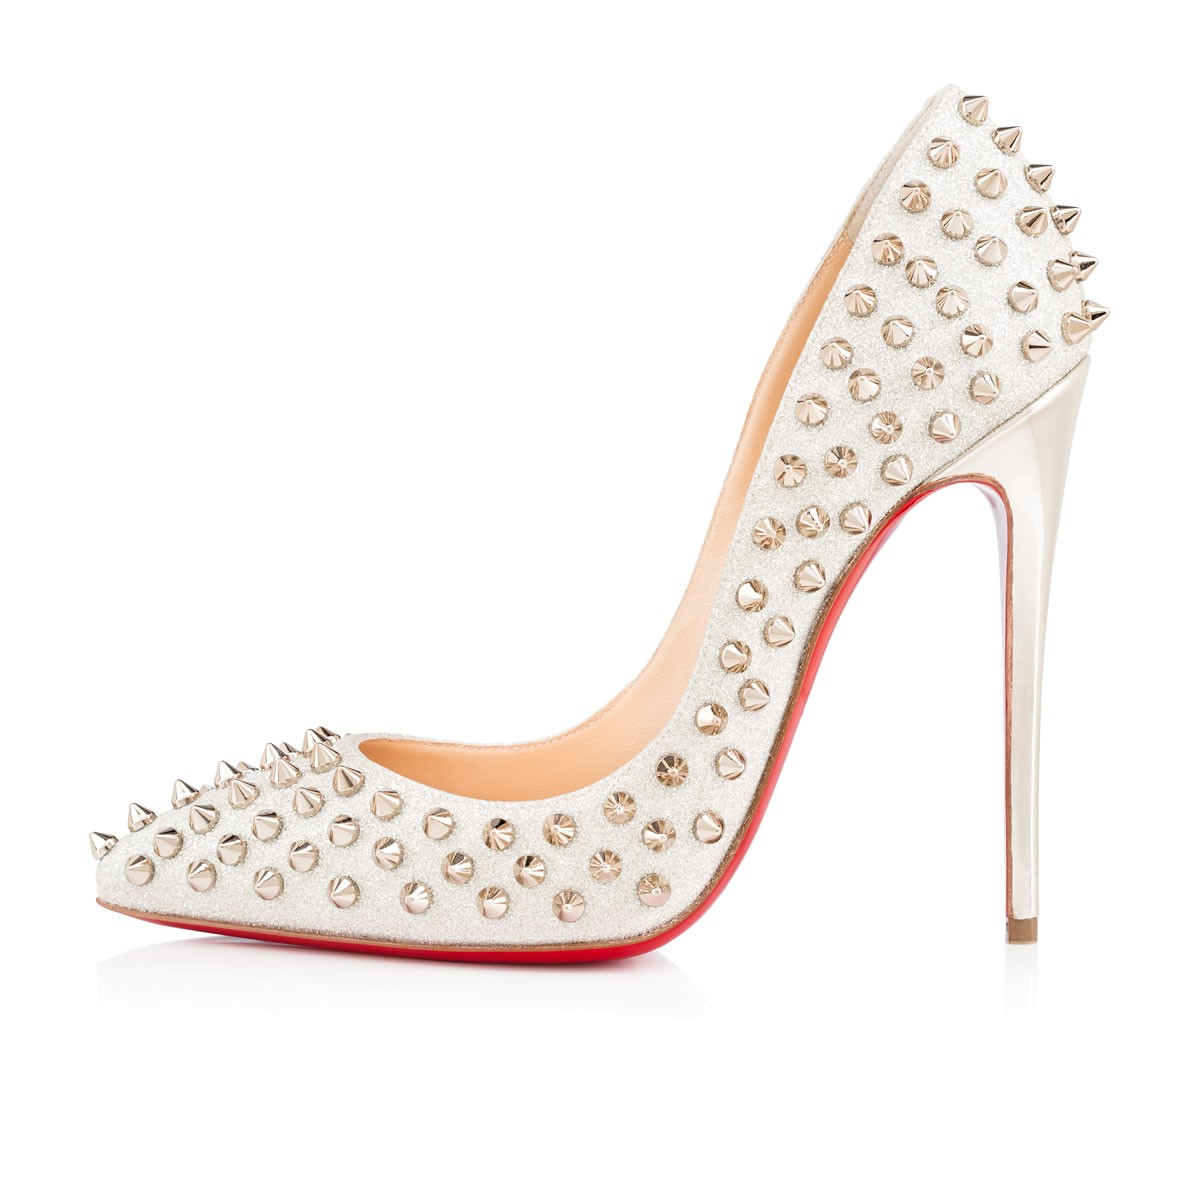 e1827d7ed7f5 Christian Louboutin Follies Spikes Glitter Mini in White - Lyst